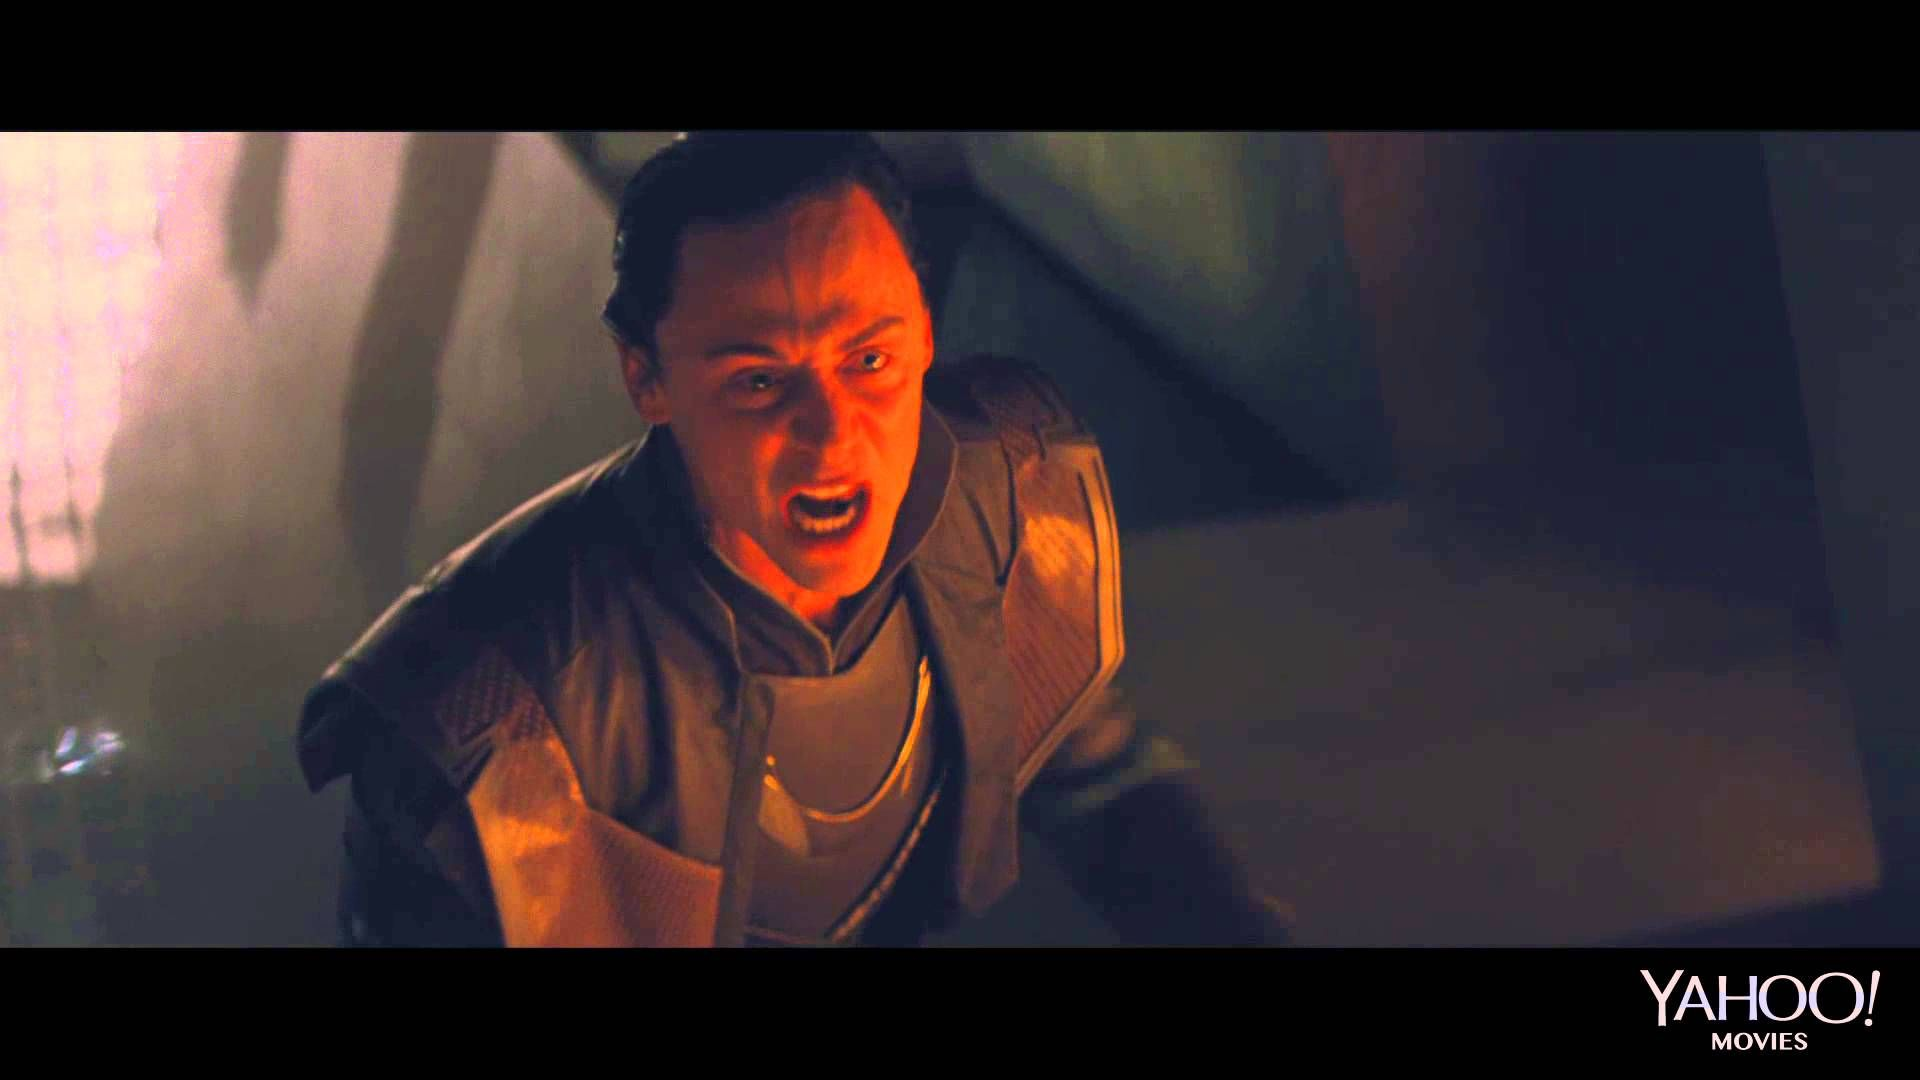 THOR: THE DARK WORLD Blu-ray Feature: Tom's Audition  See the first footage of Tom Hiddleston's original audition tape to play the role of Thor. #, #, #BluRay, #Dark, #First, #Of, #Play, #Ray, #The, #To, #Tom, #World   Read post here : https://www.fattaroligt.se/thor-the-dark-world-blu-ray-feature-toms-audition/   Visit www.fattaroligt.se for more.